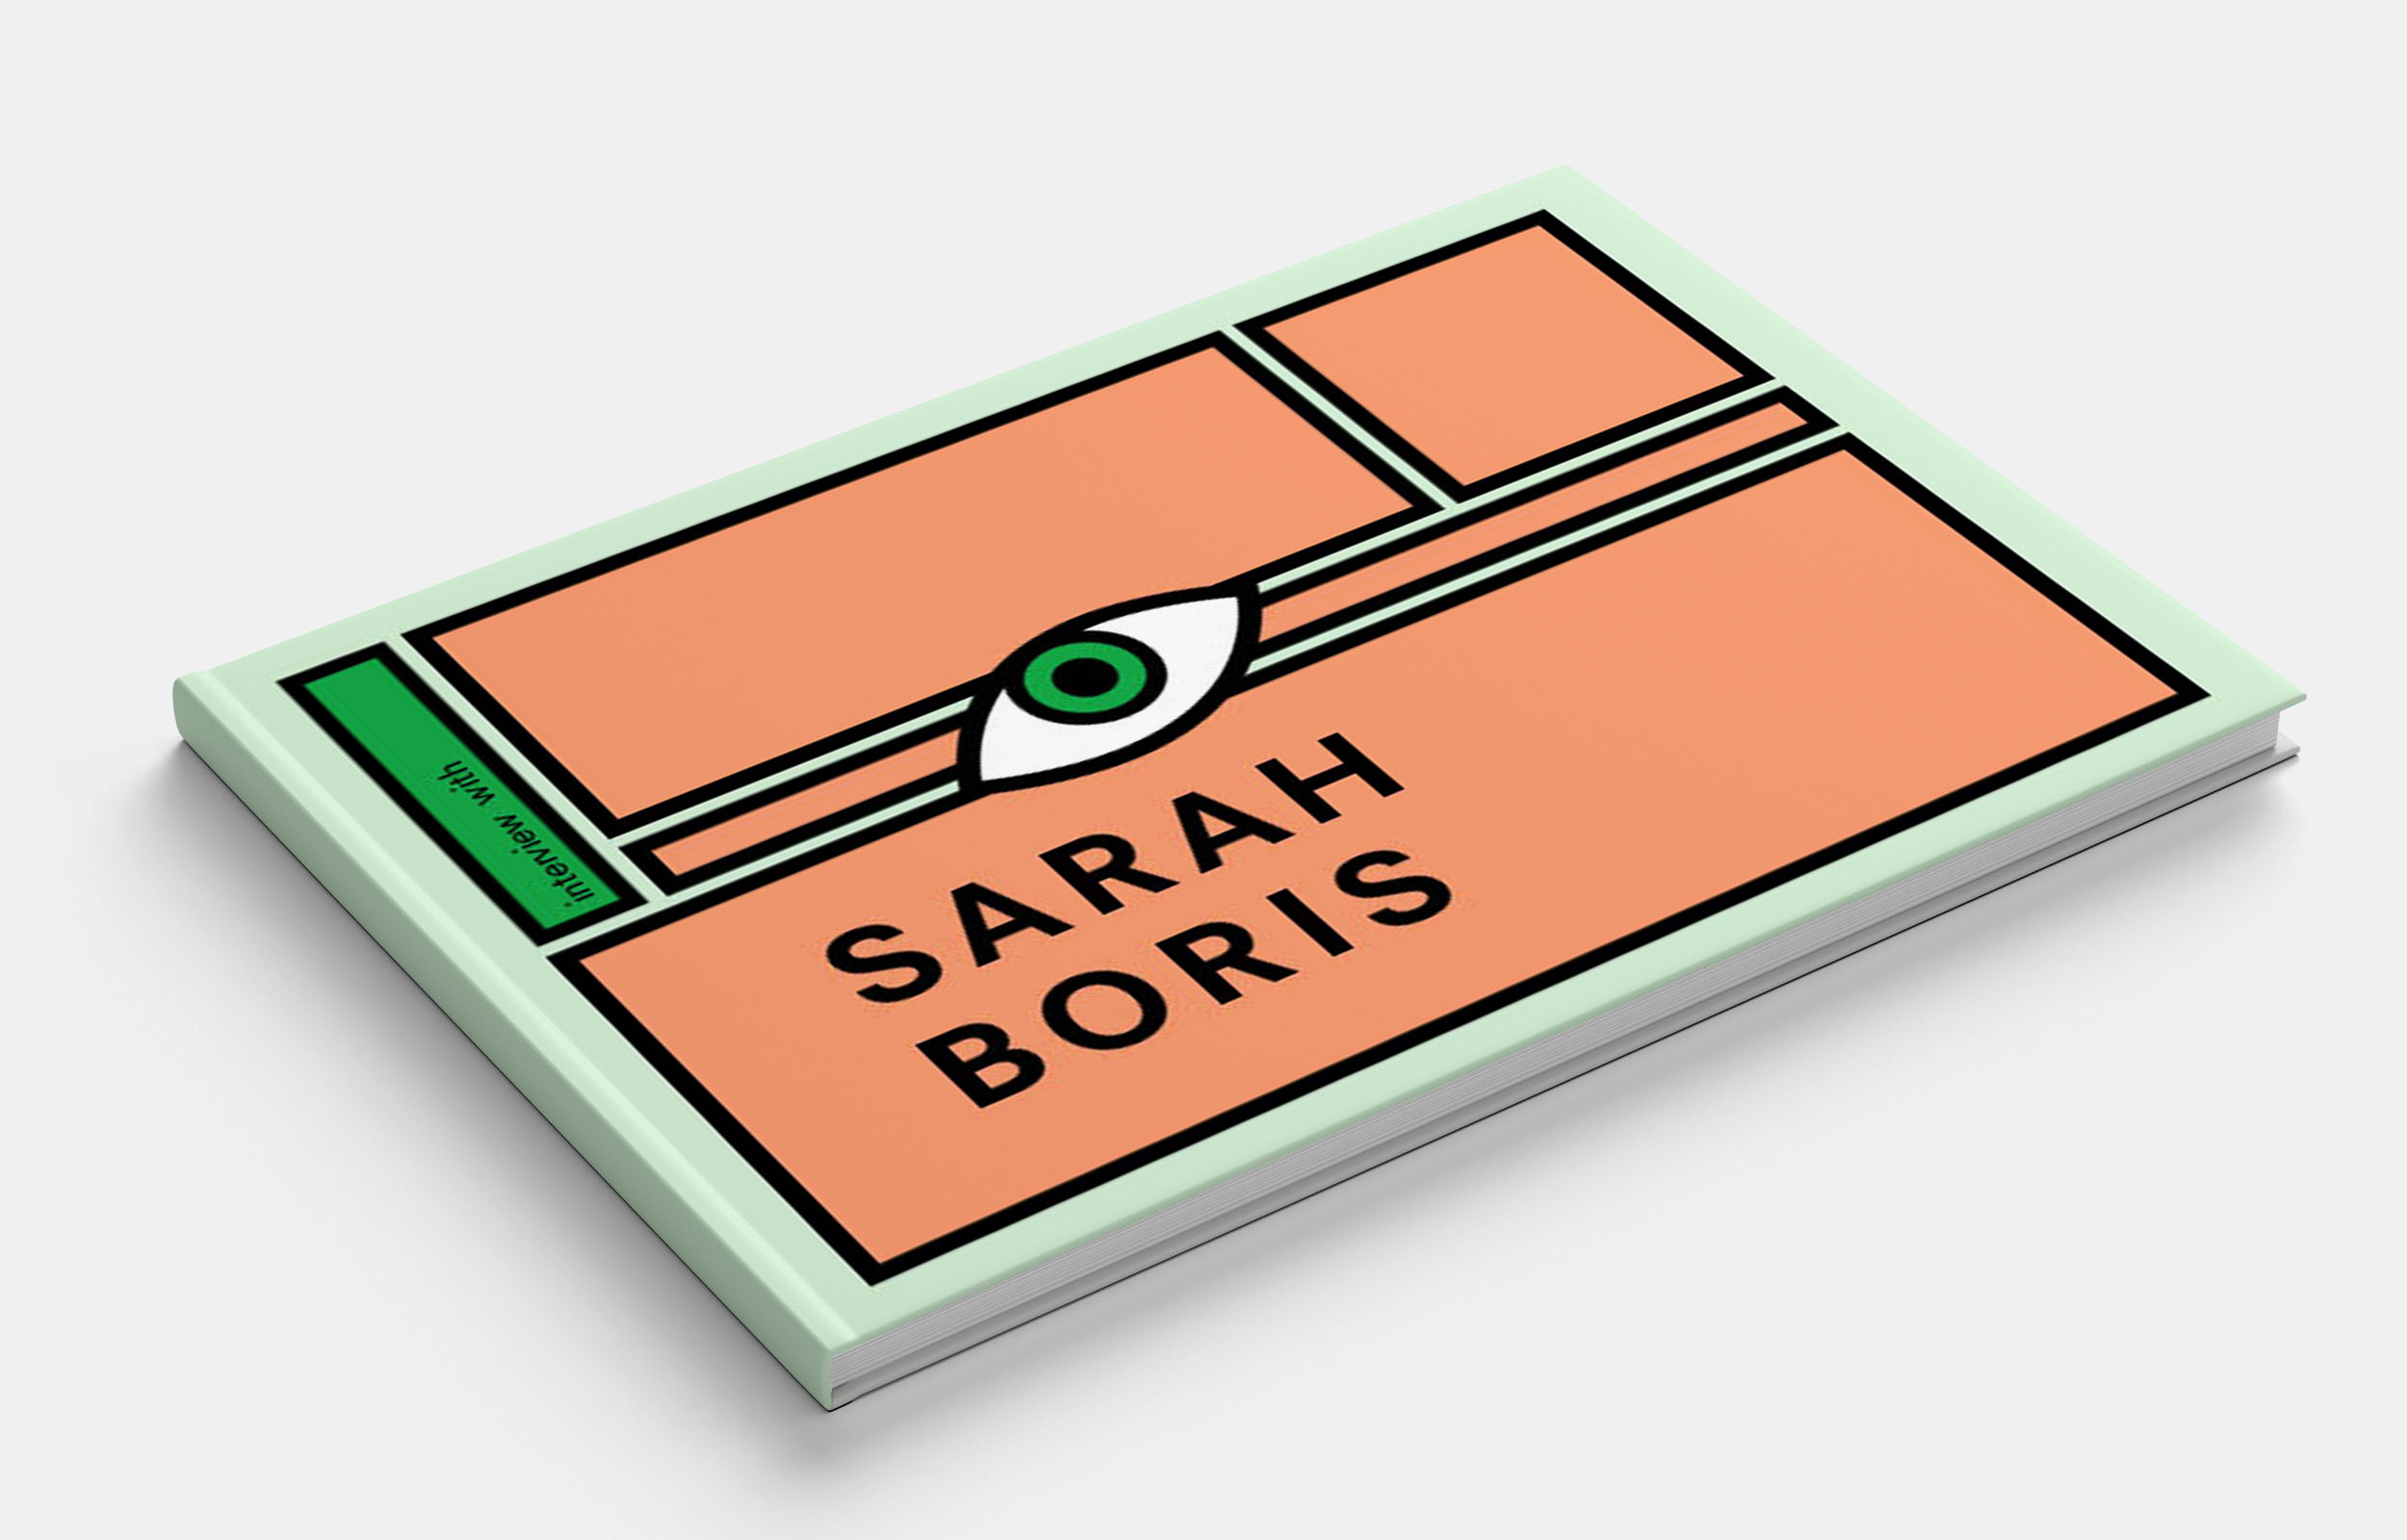 Srah Boris book